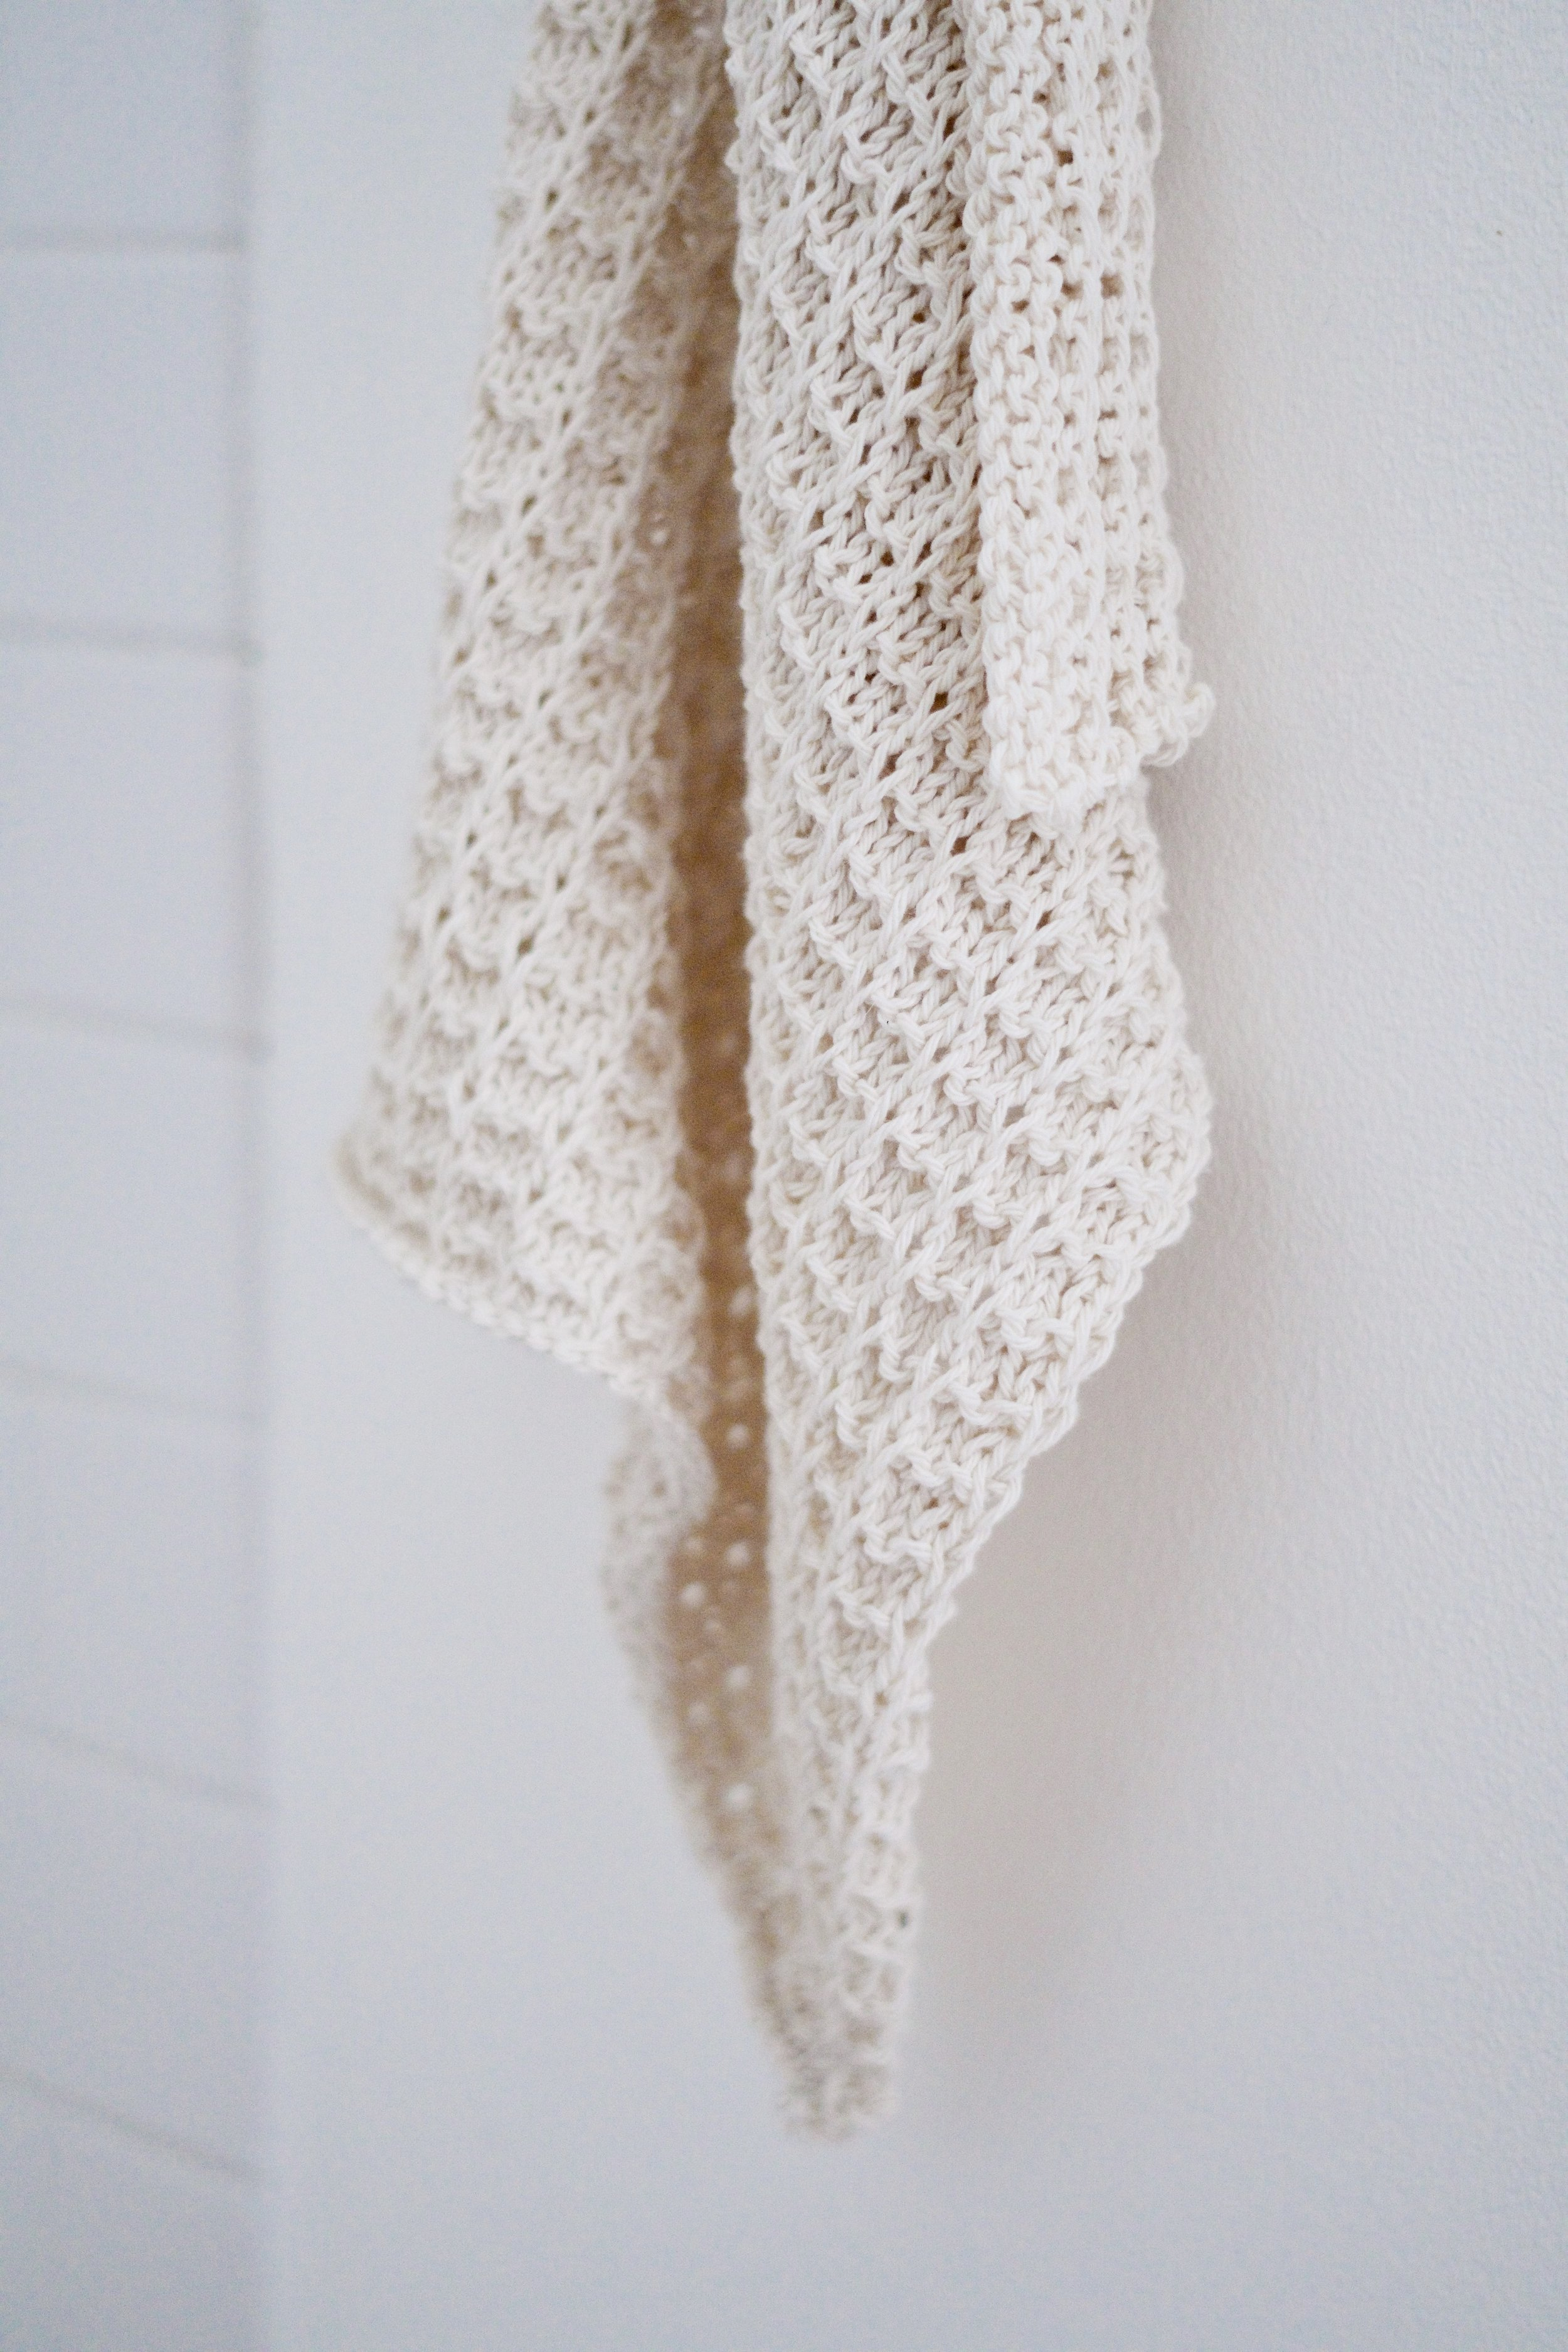 Waverly Hand Towel pattern by Two of Wands